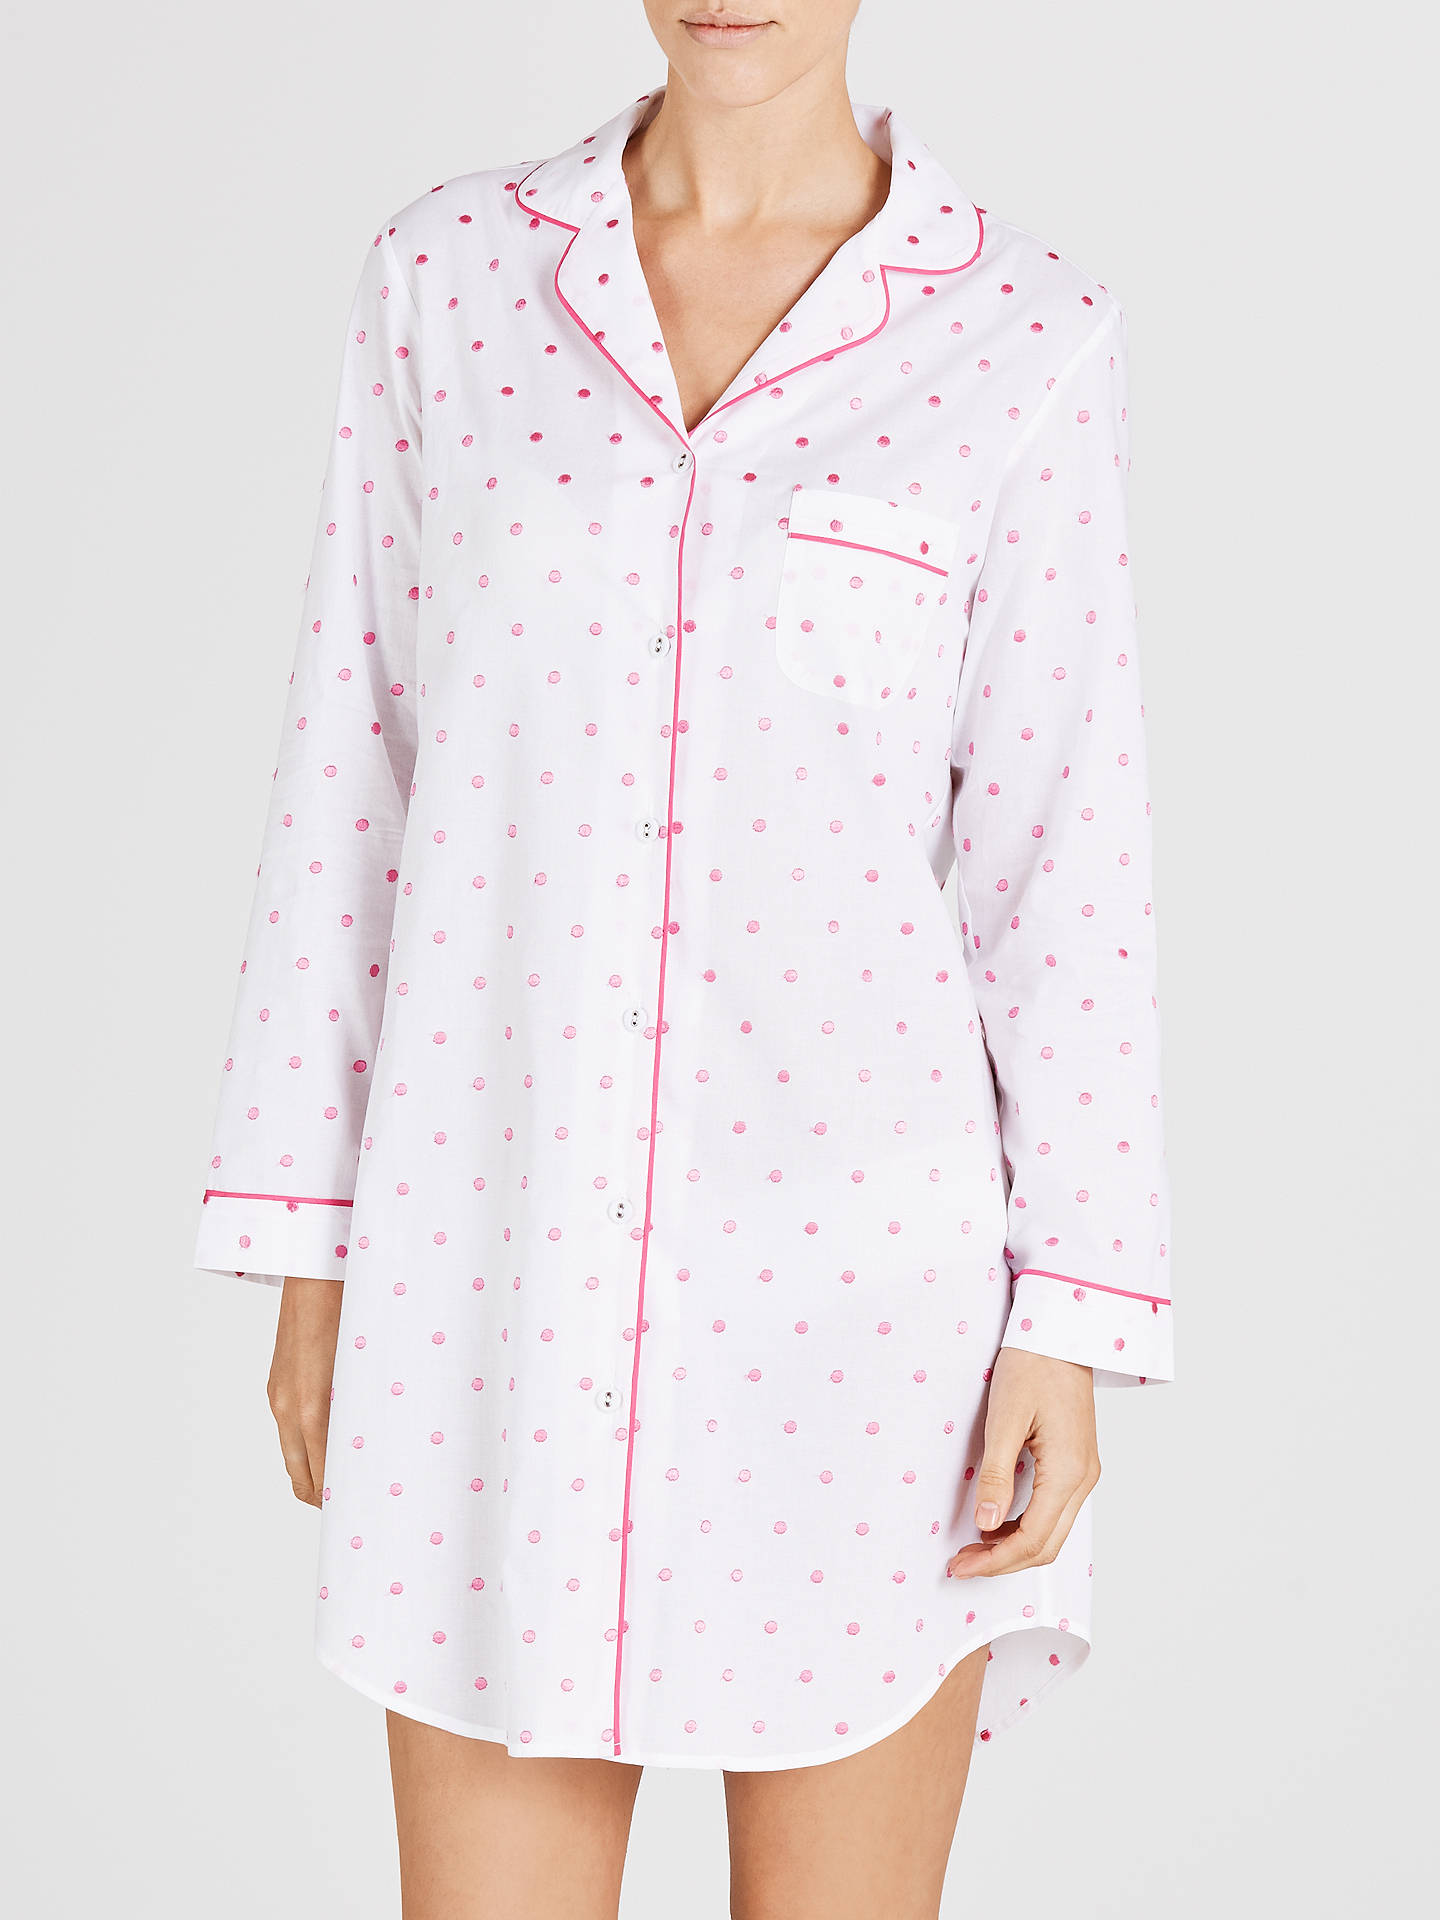 BuyJohn Lewis Spot Nightshirt, White / Pink, 8 Online at johnlewis.com